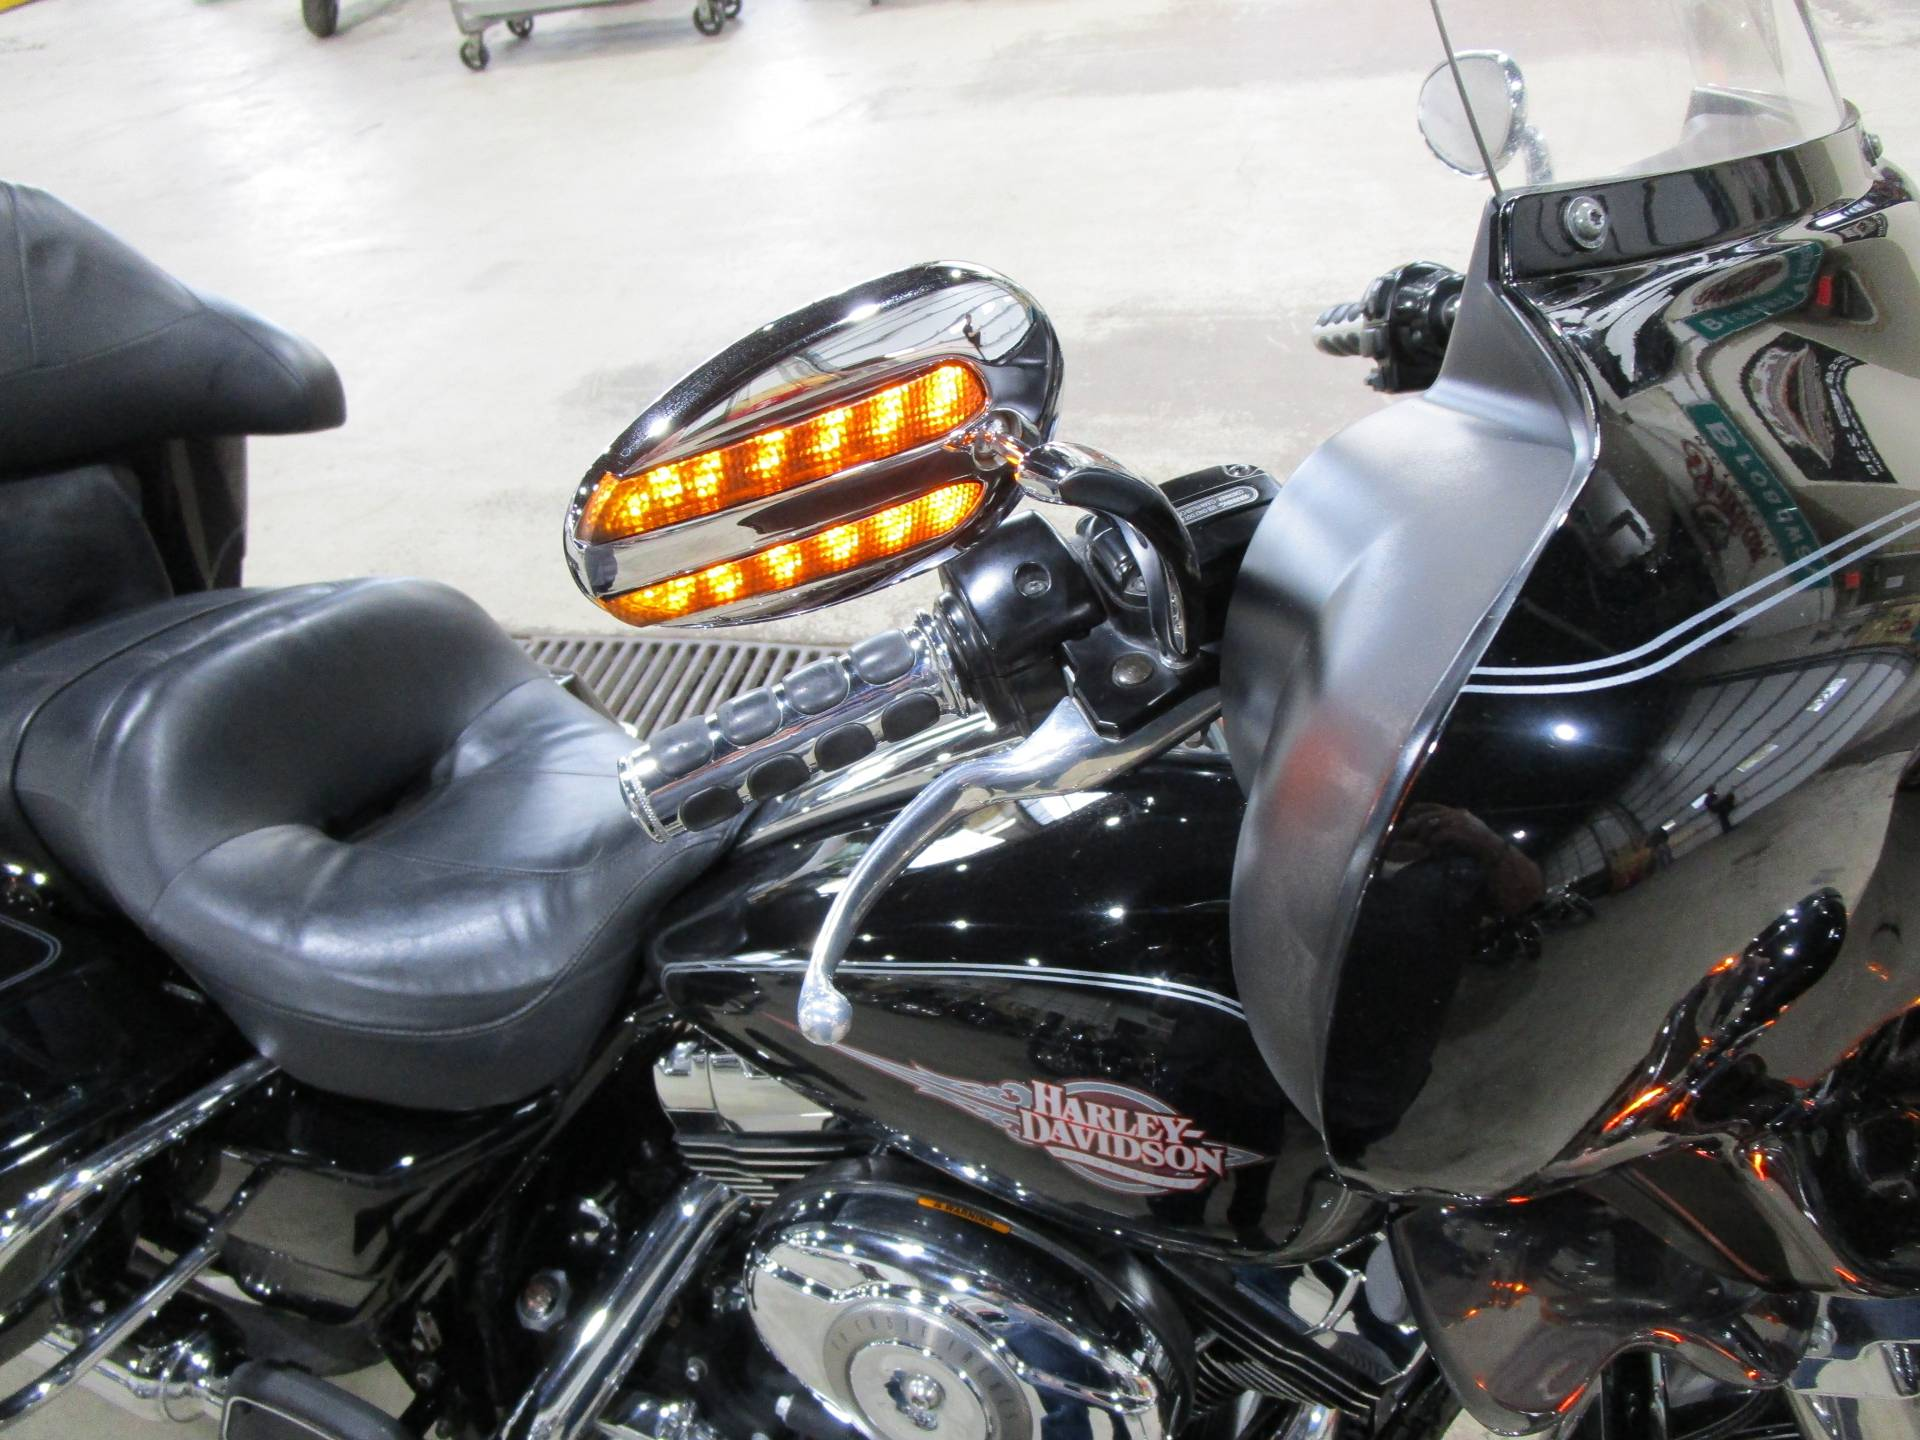 2008 Harley-Davidson FLHTC ELECTRA GLIDE CLASSIC in South Saint Paul, Minnesota - Photo 25